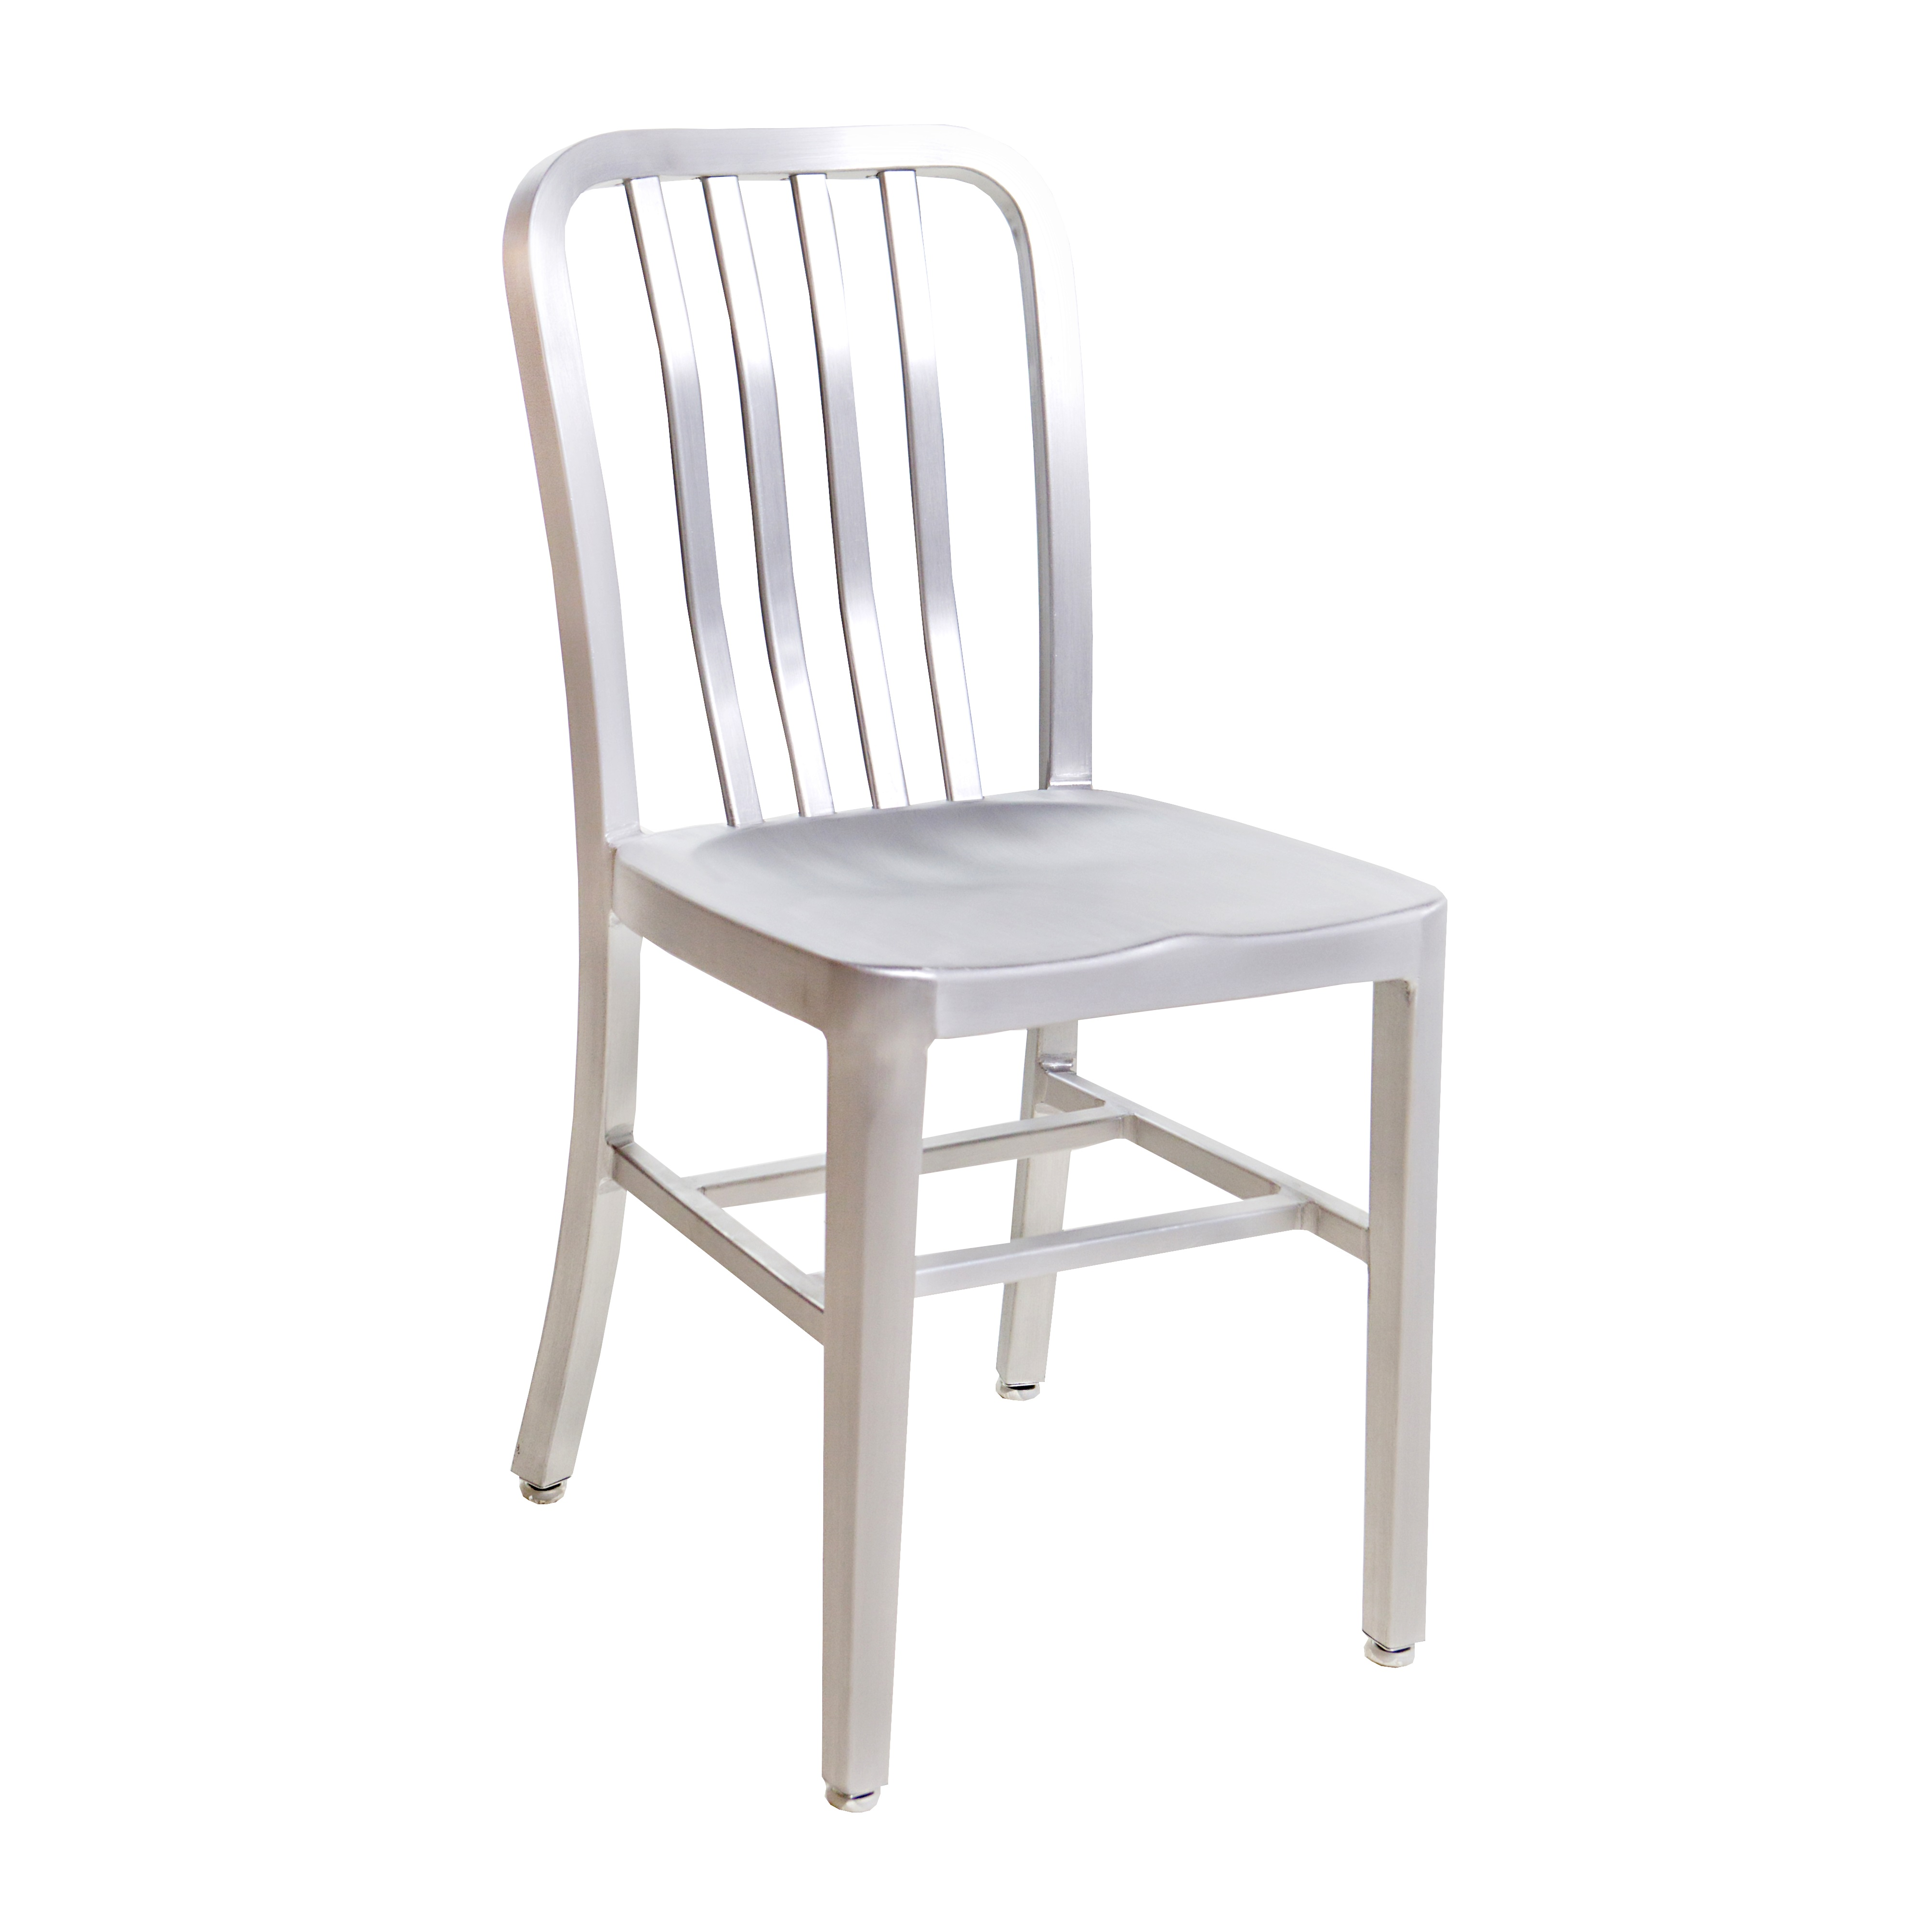 Aluminum Chairs Metal Chairs Aluminum Classic Navy Seating Chair